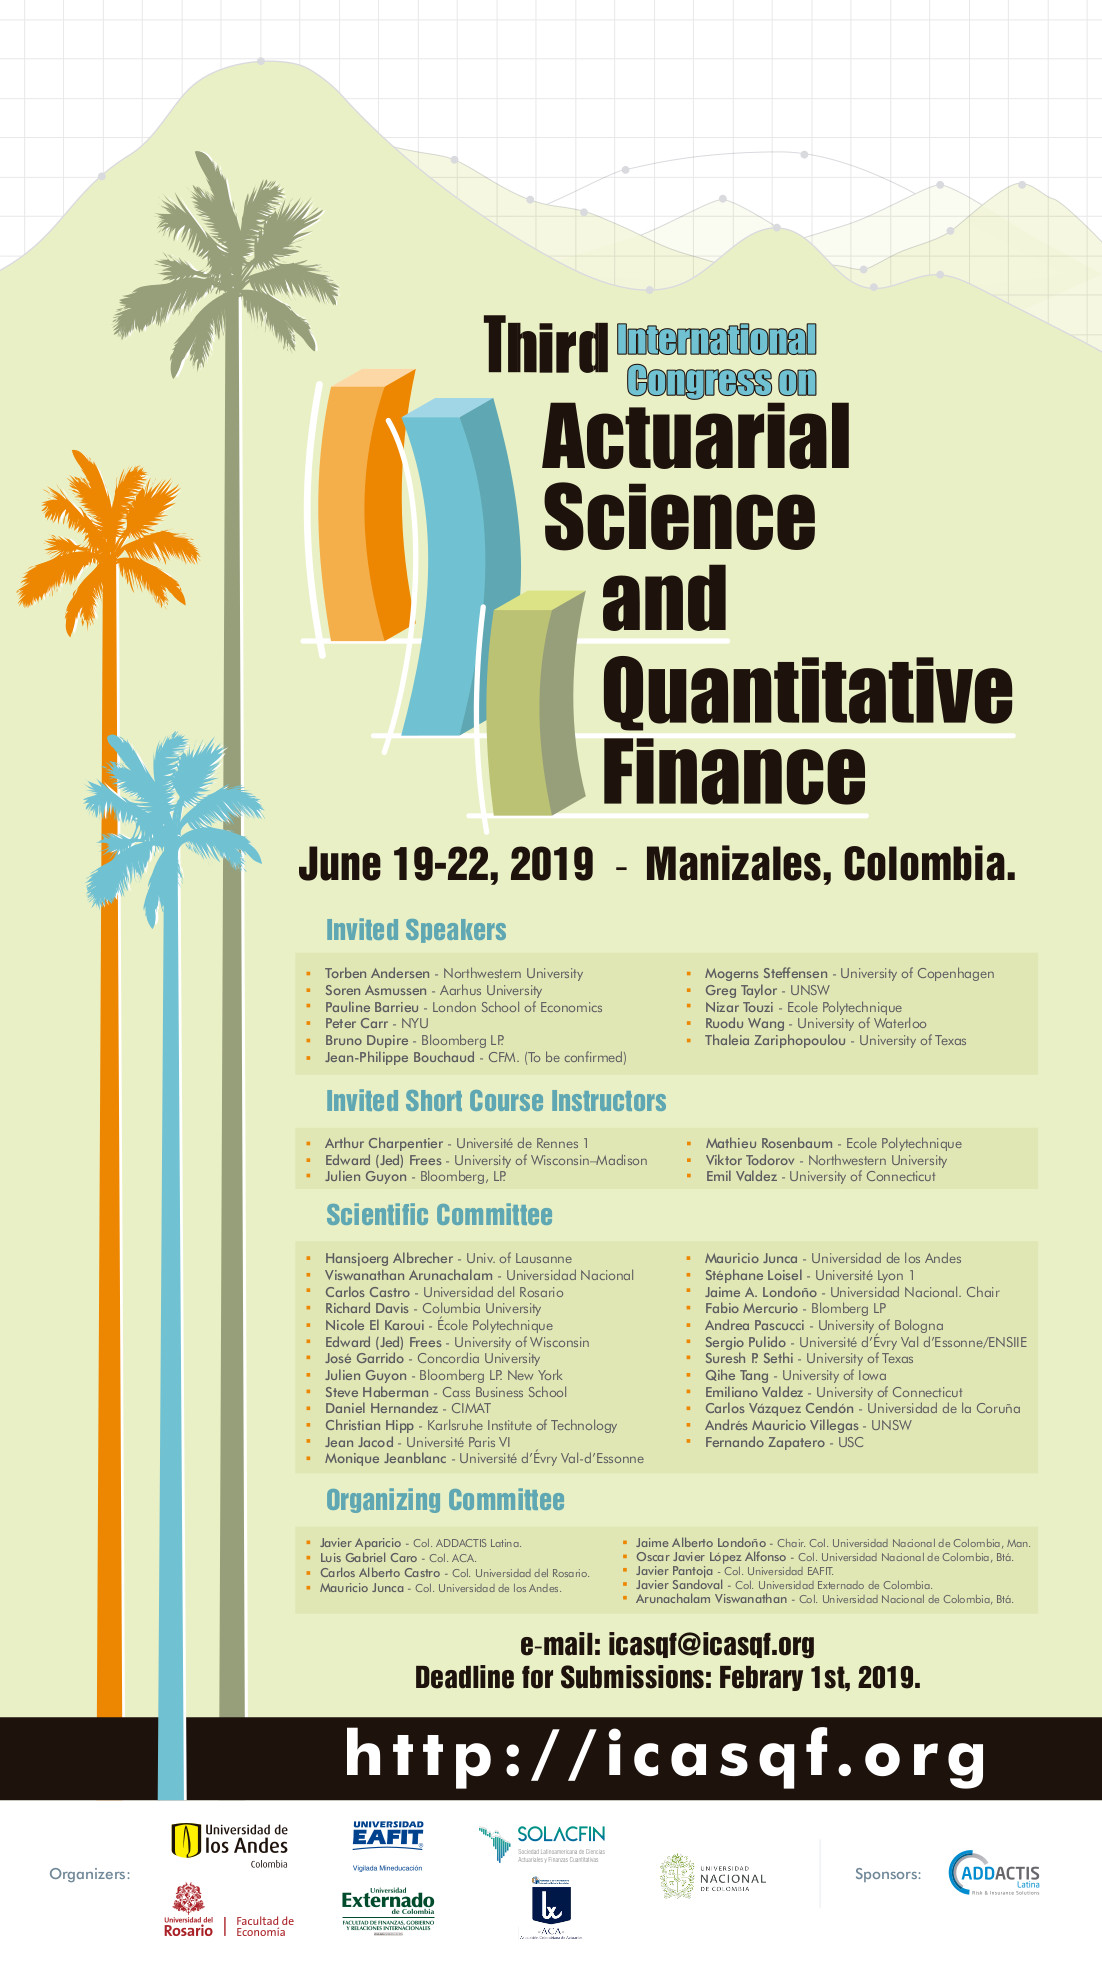 Third International Congress on Actuarial Science and Quantitative Finance (ICASQF 2019)